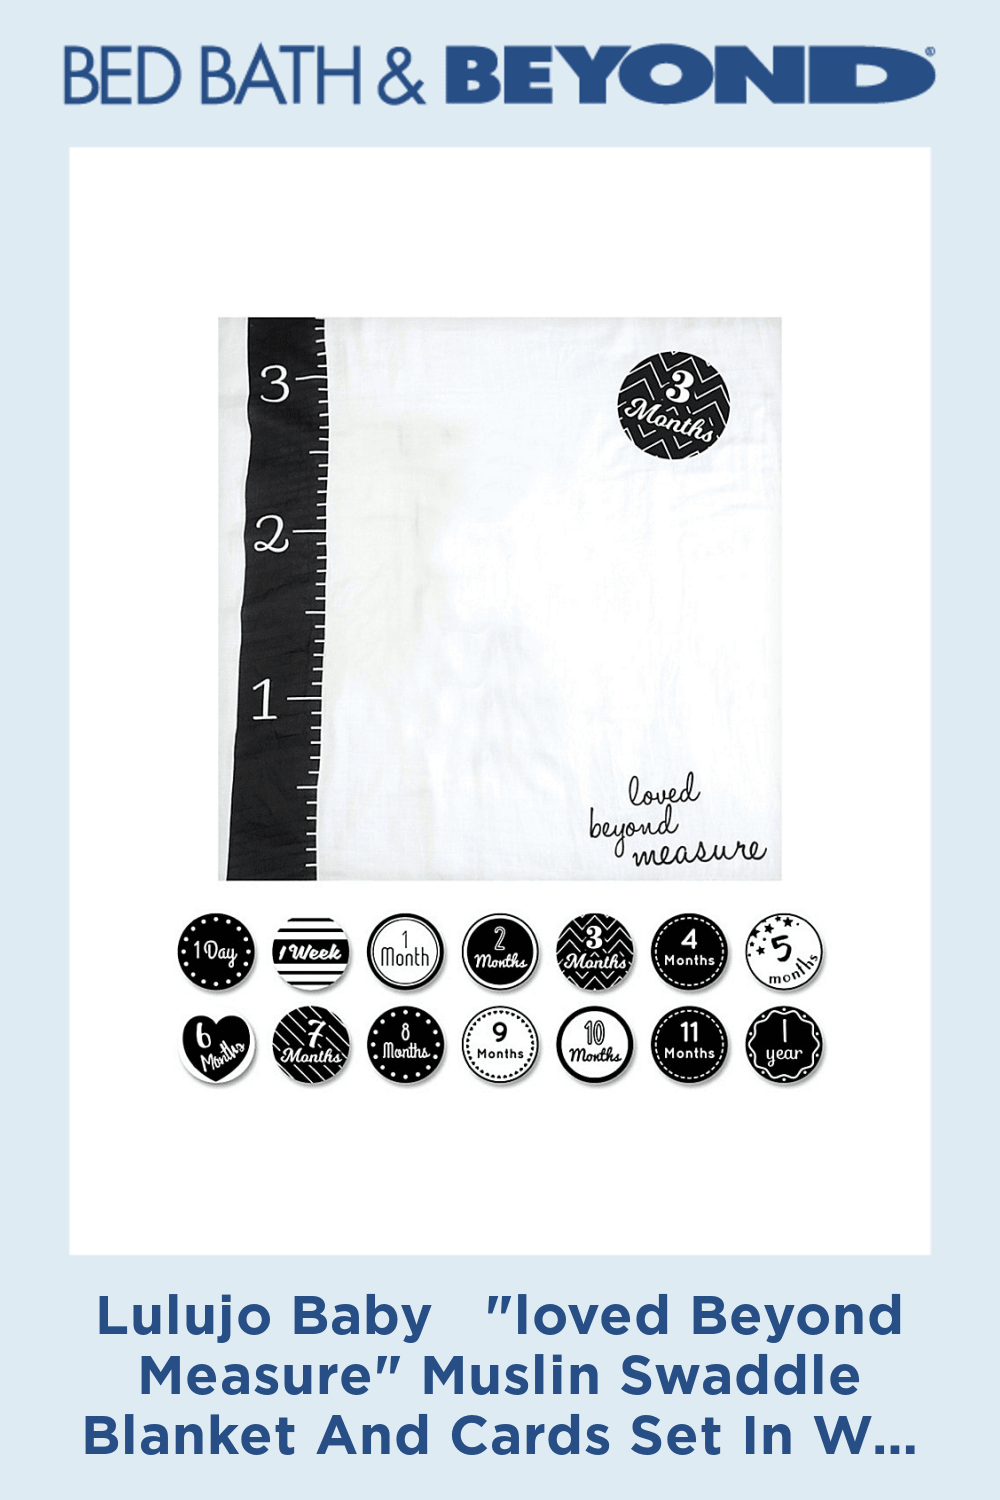 Lulujo Baby loved Beyond Measure Muslin Swaddle Blanket And Cards Set In White/grey